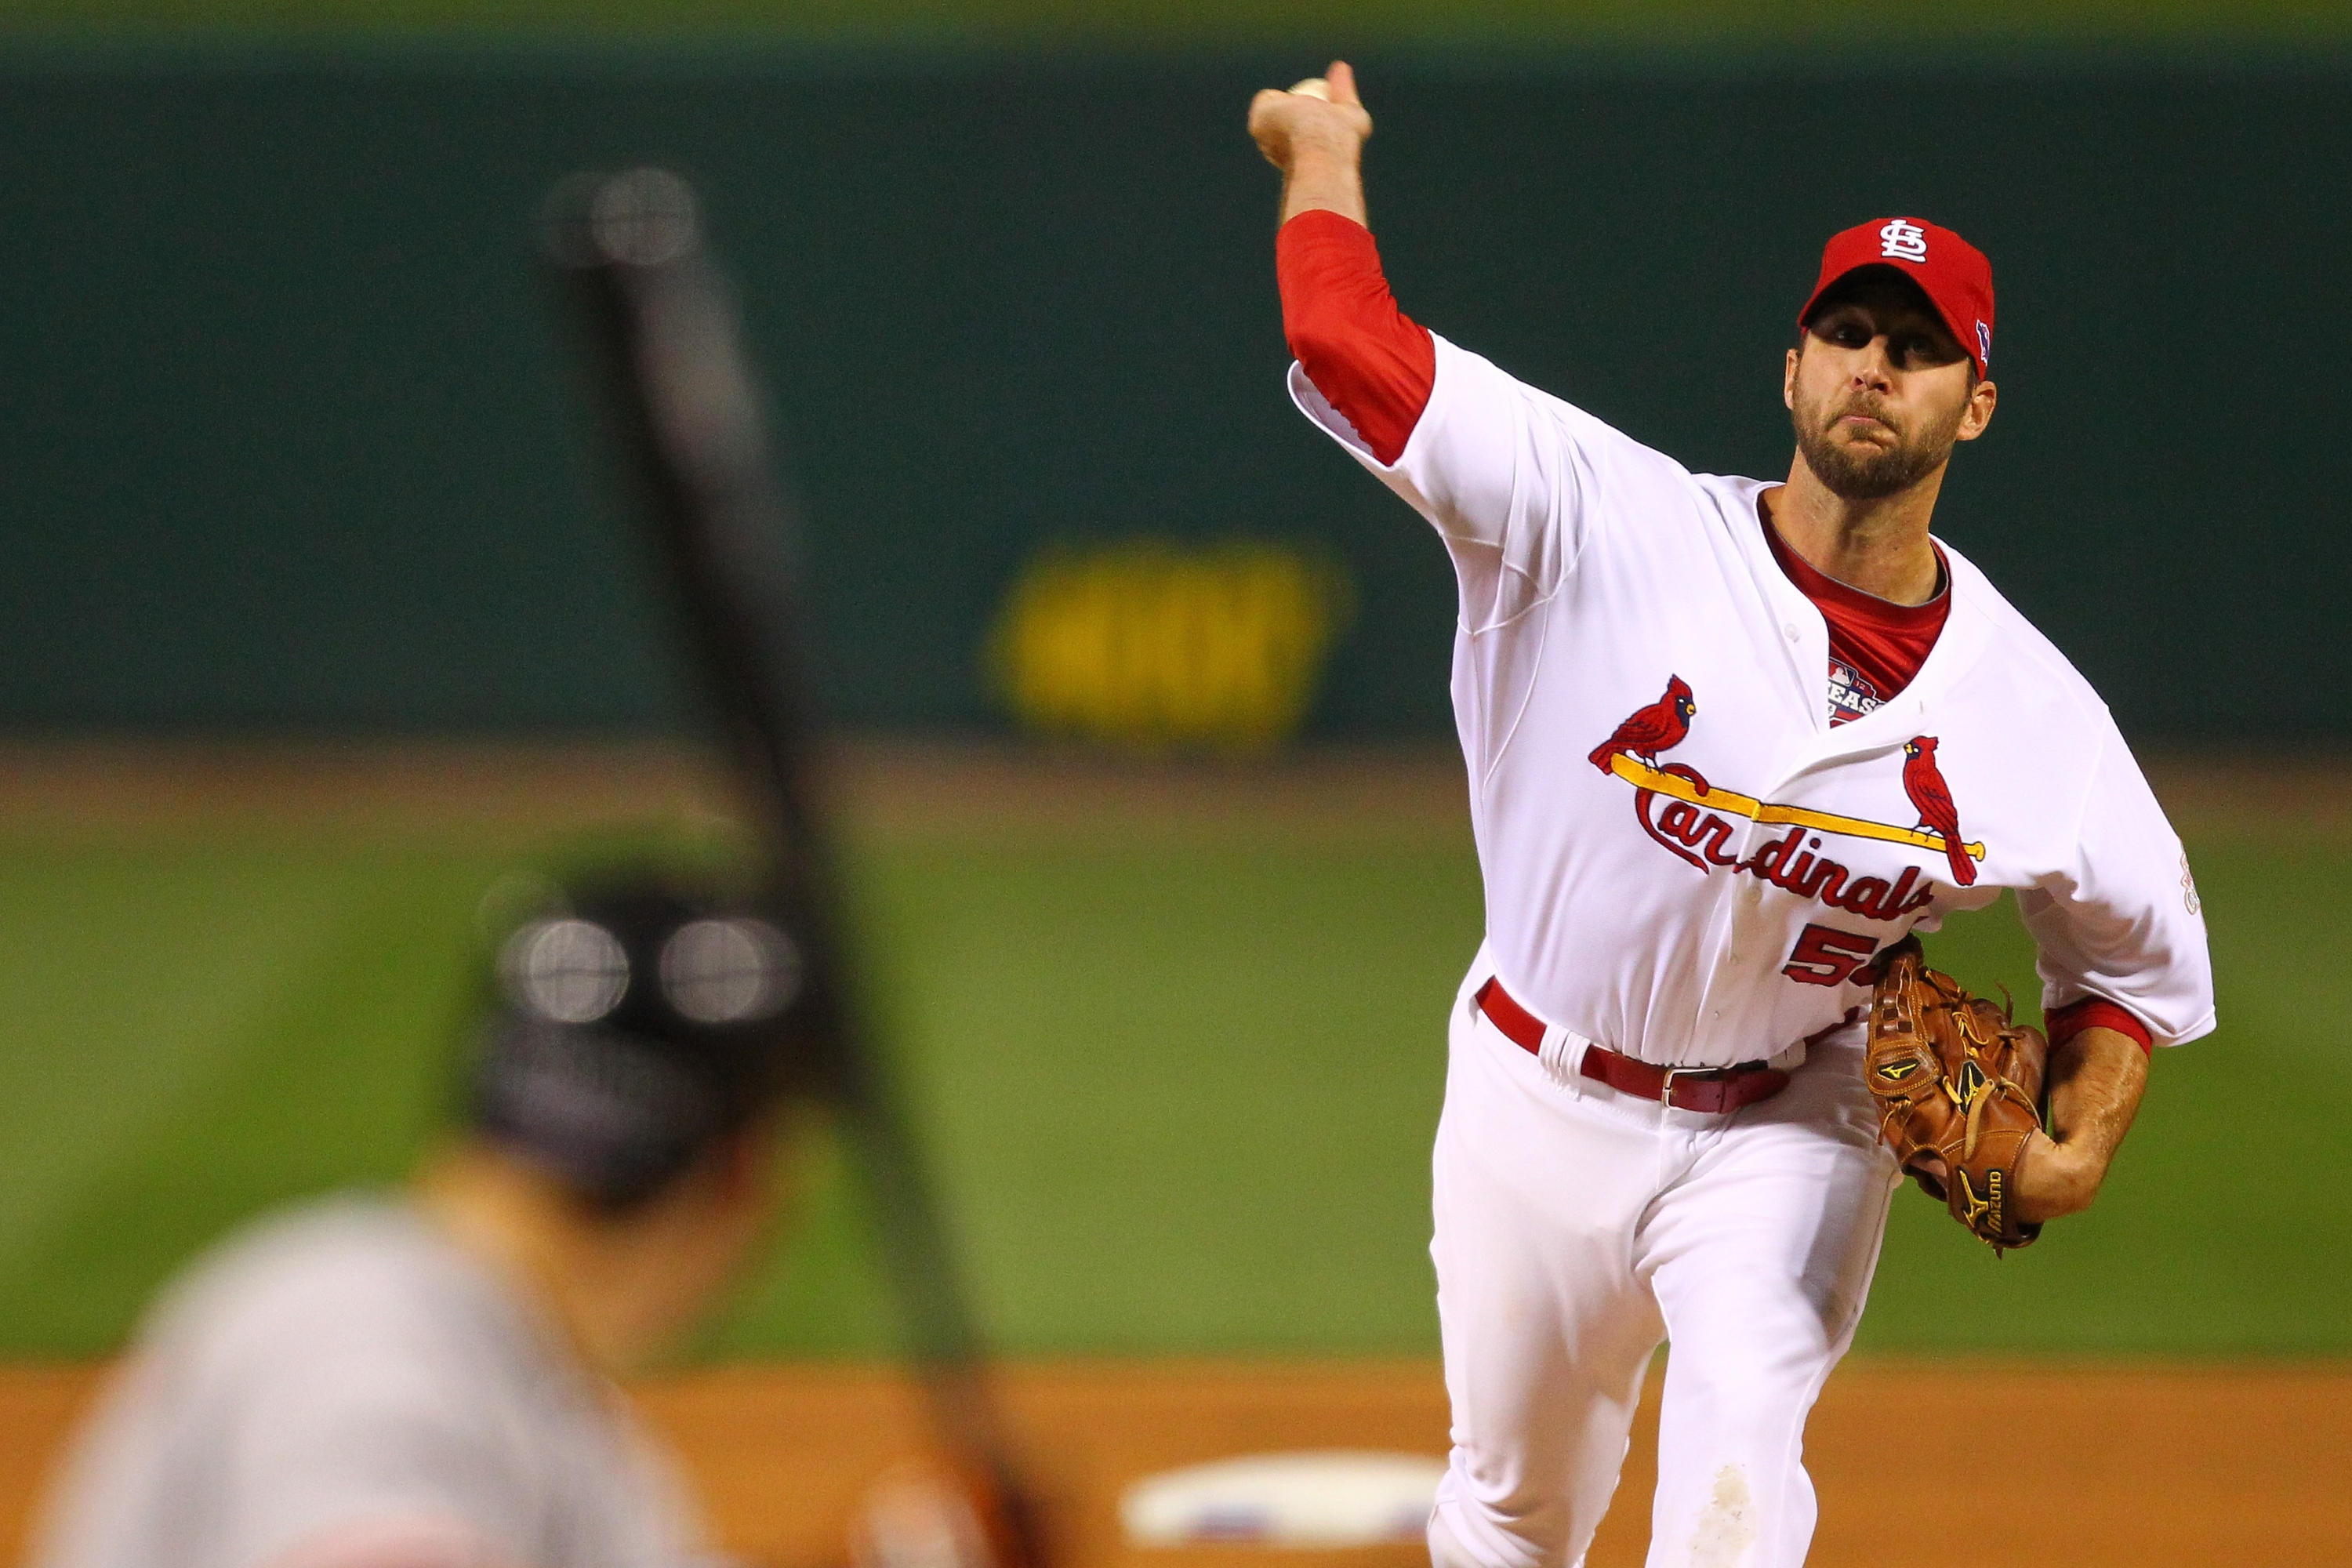 Adam Wainwright went 14-13 with a 3.94 ERA last season. (Getty Images)